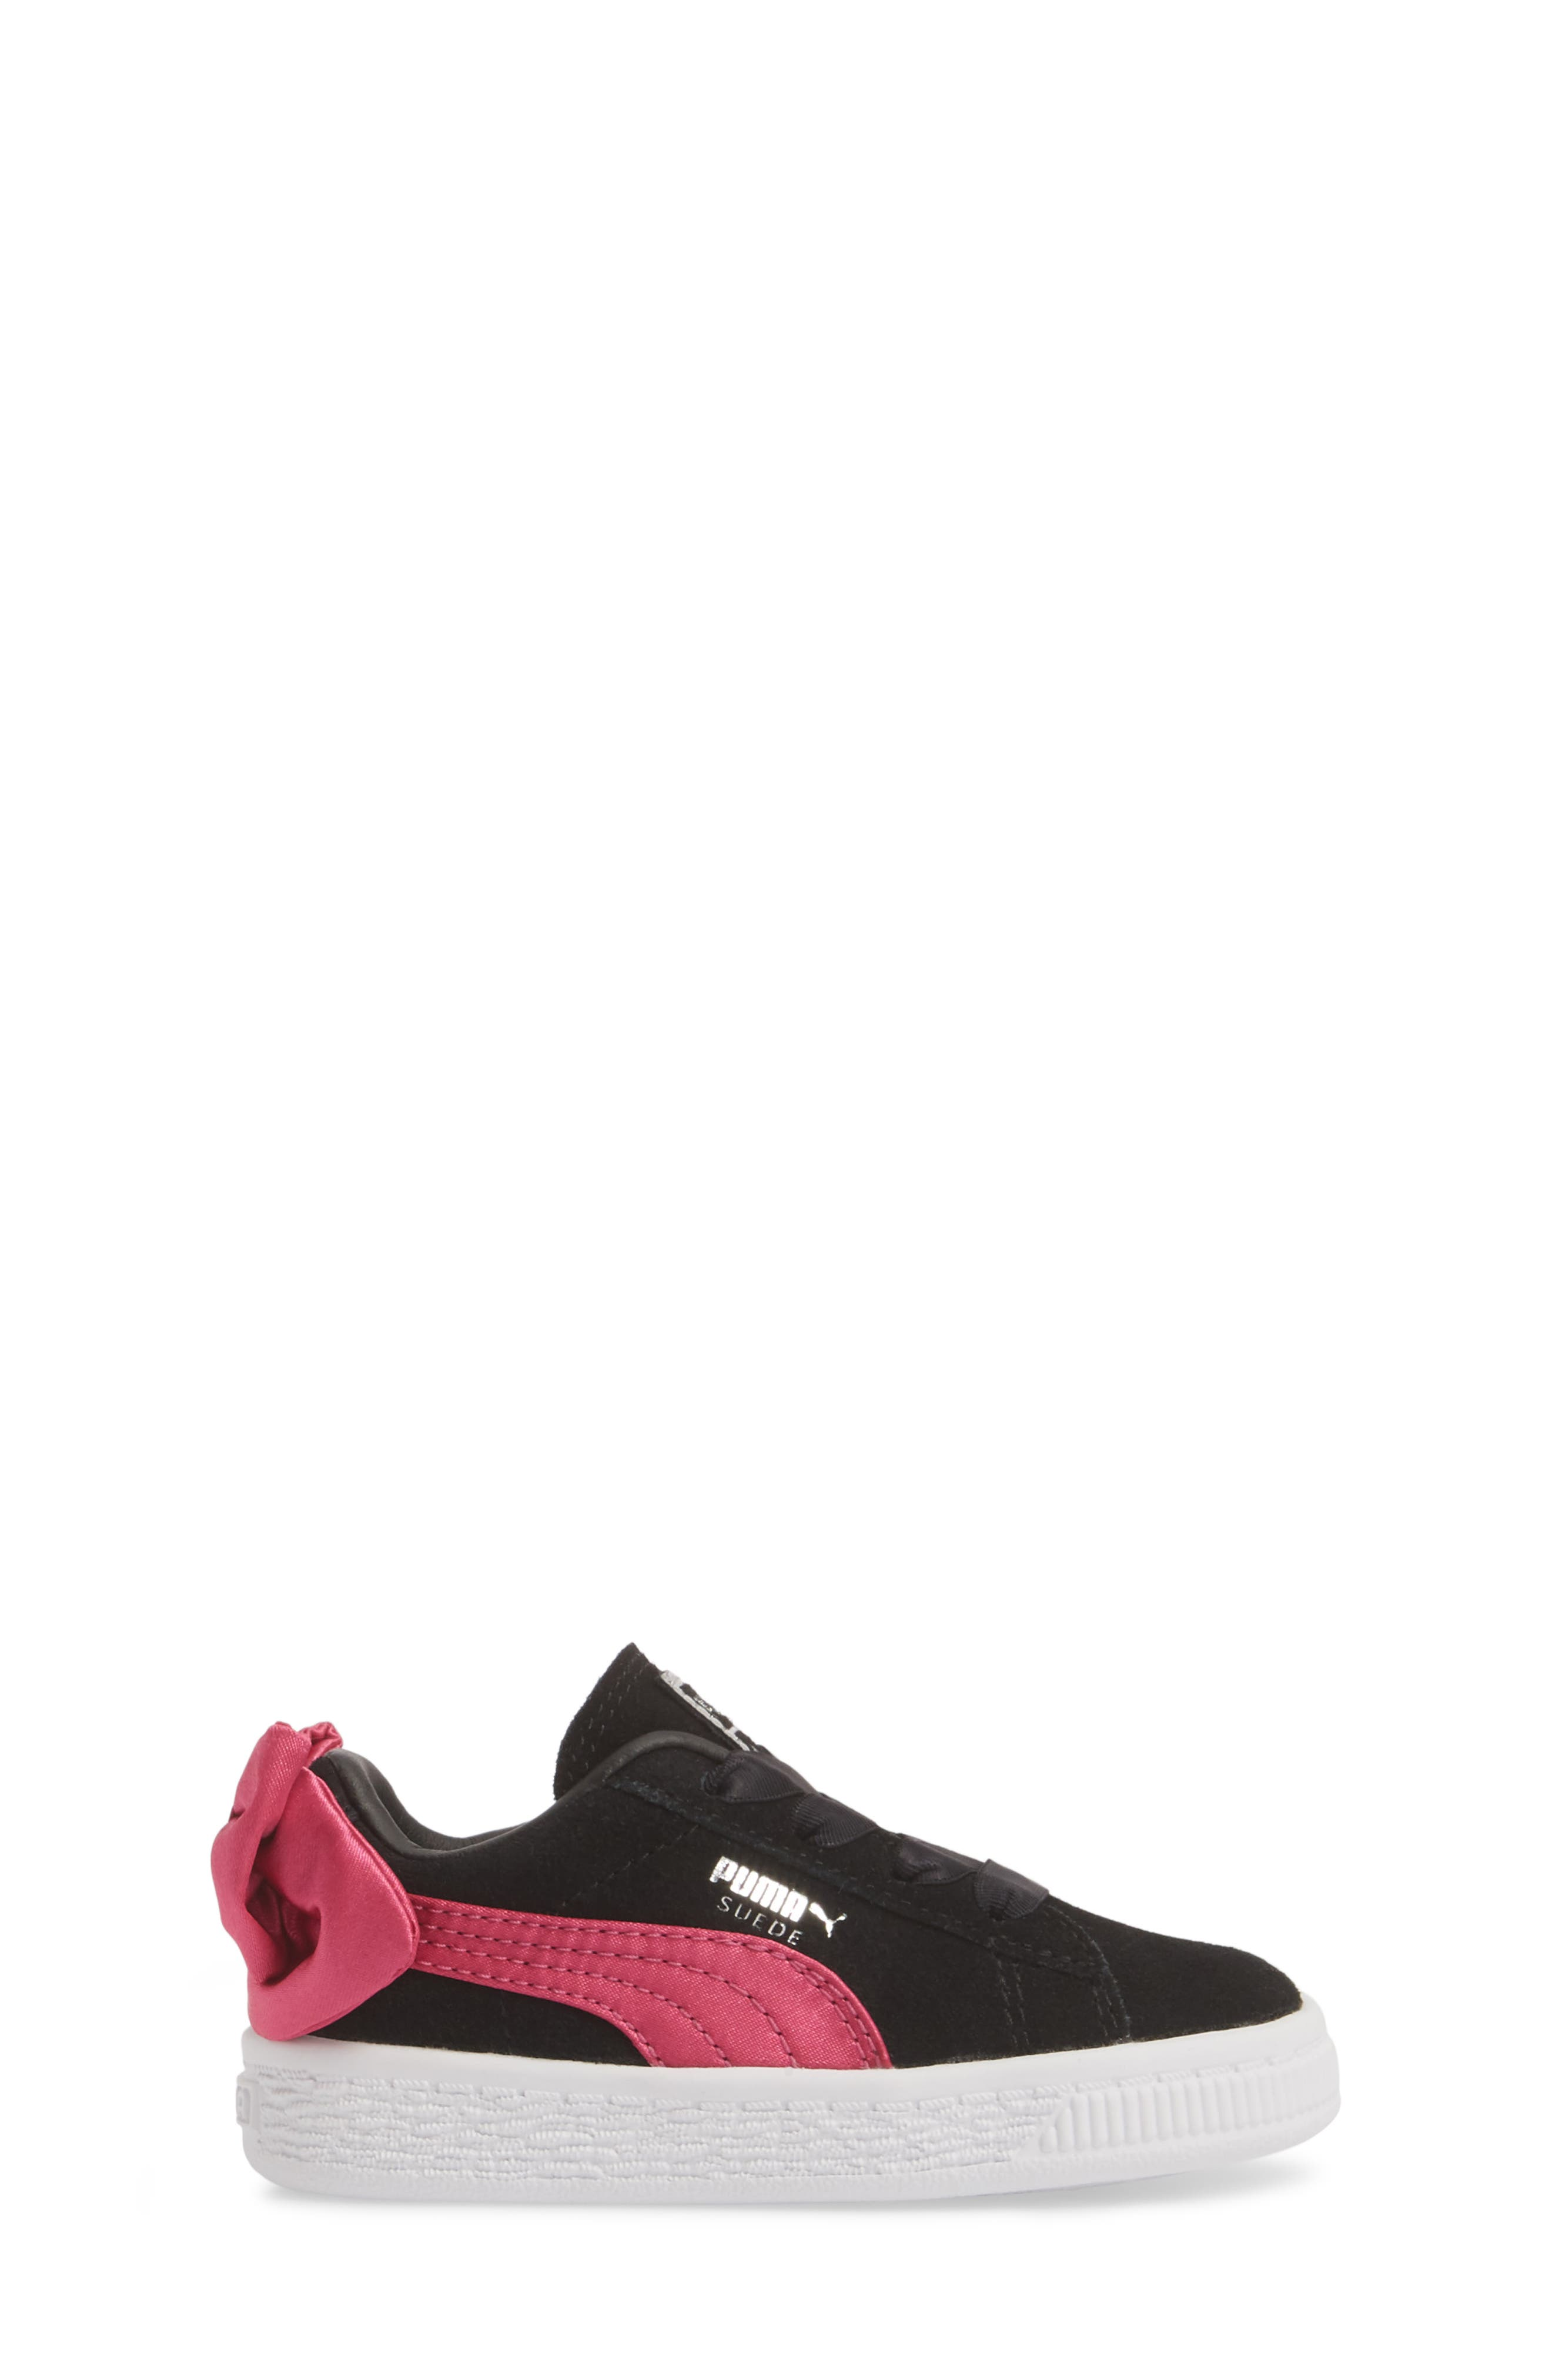 Bow Sneaker,                             Alternate thumbnail 3, color,                             BLACK/ BEETROOT PURPLE